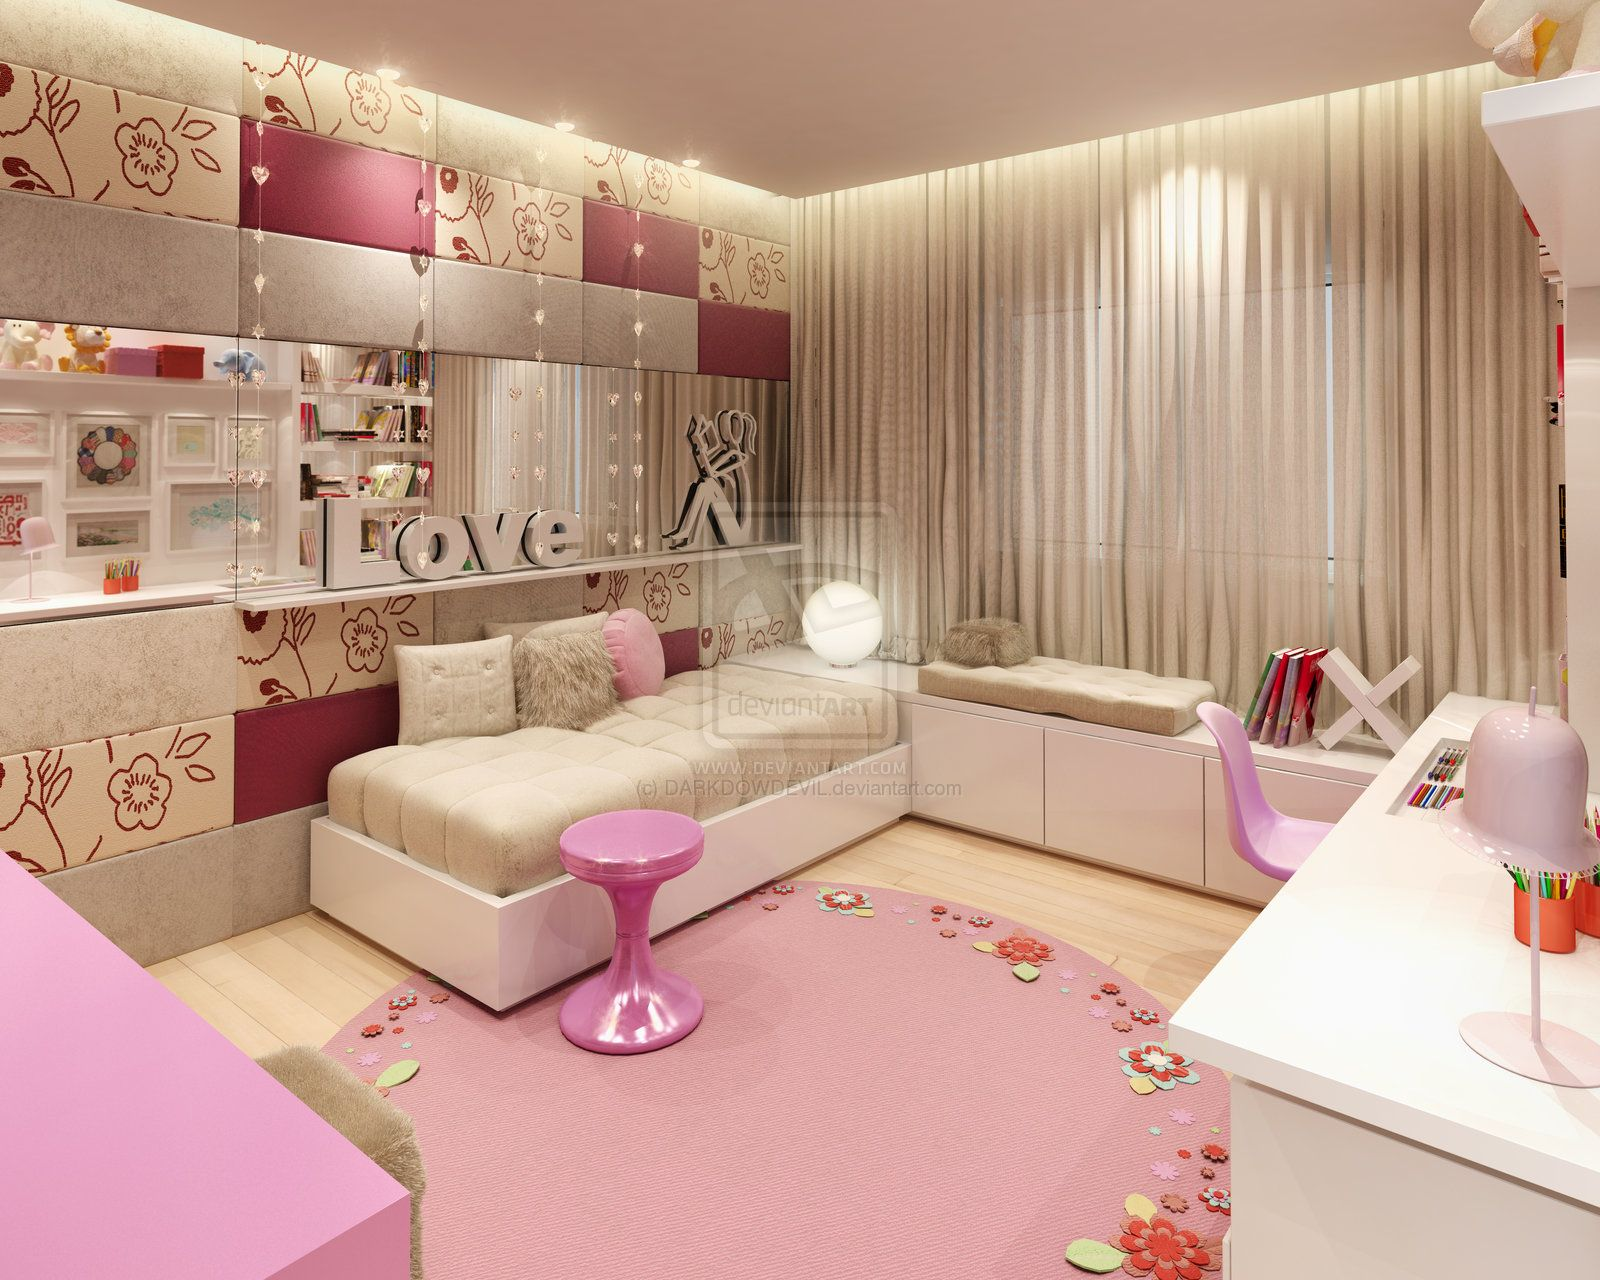 30 Dream Interior Design Ideas for Teenage Girl s Rooms